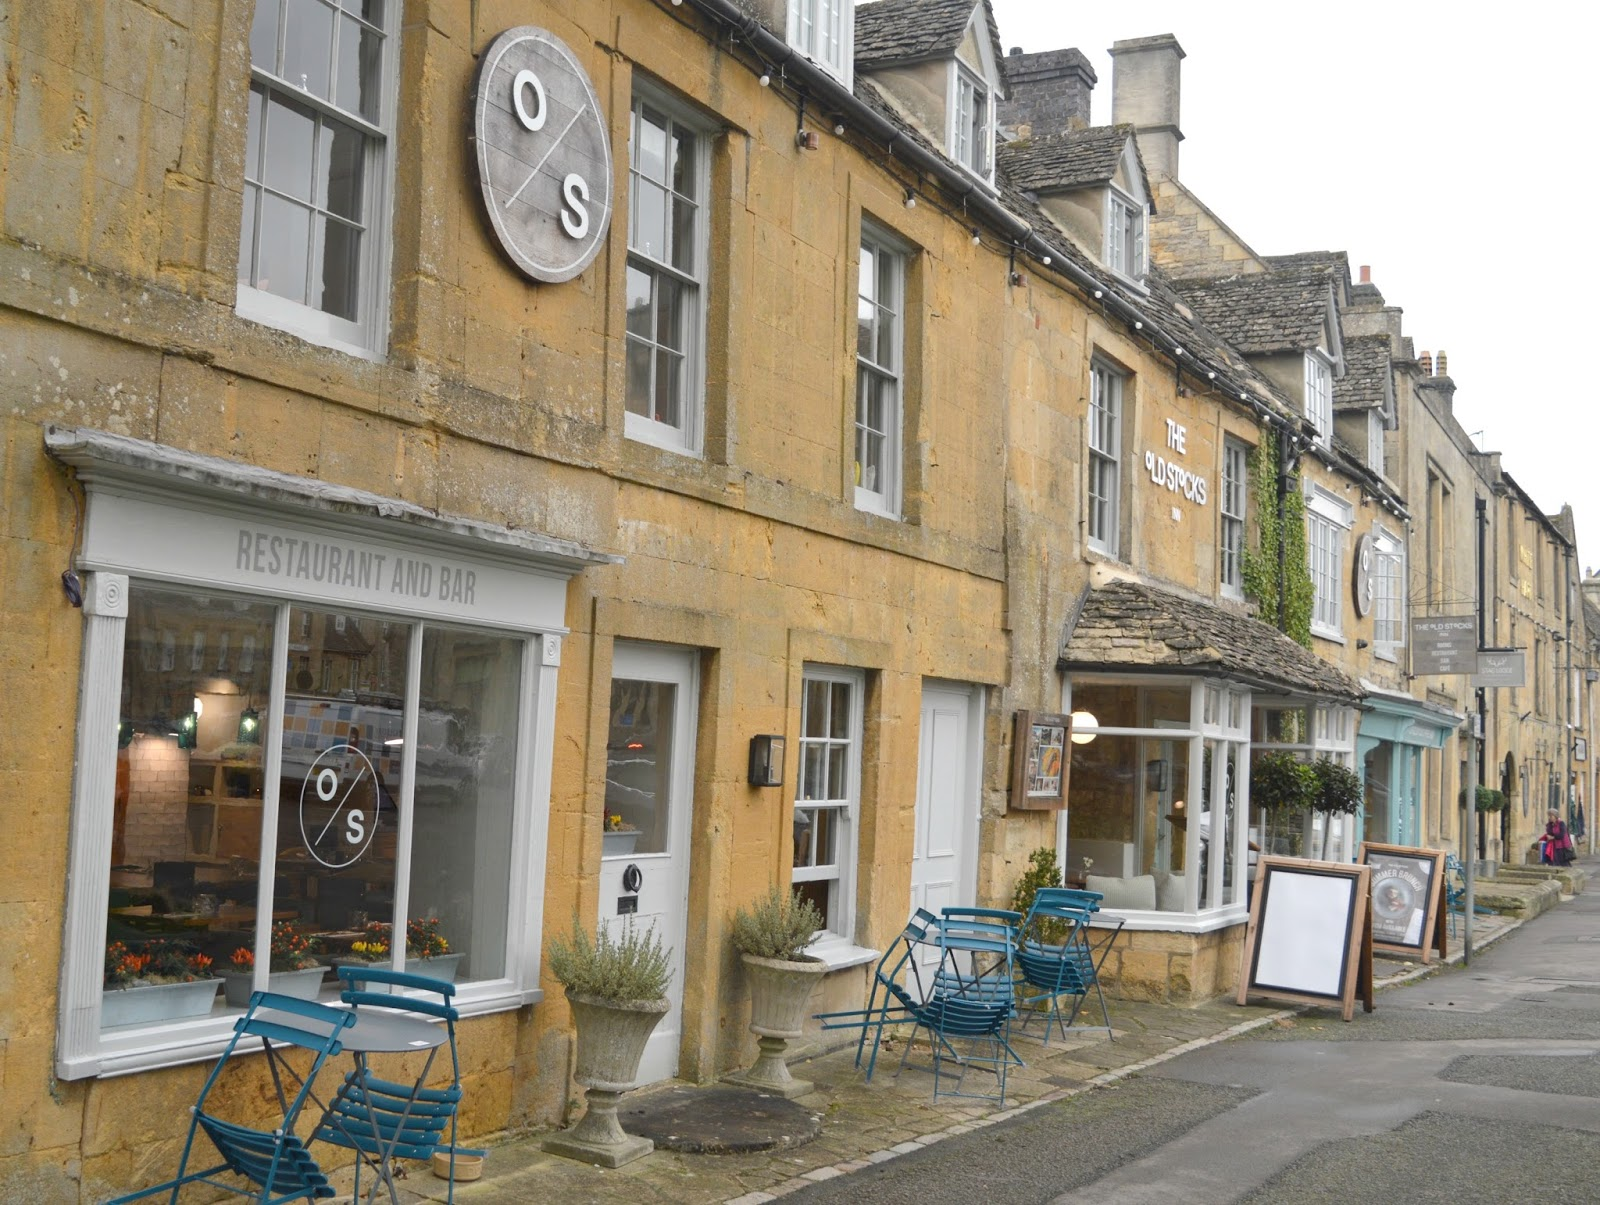 Spend a day in the Cotswolds - Stow on the Wold